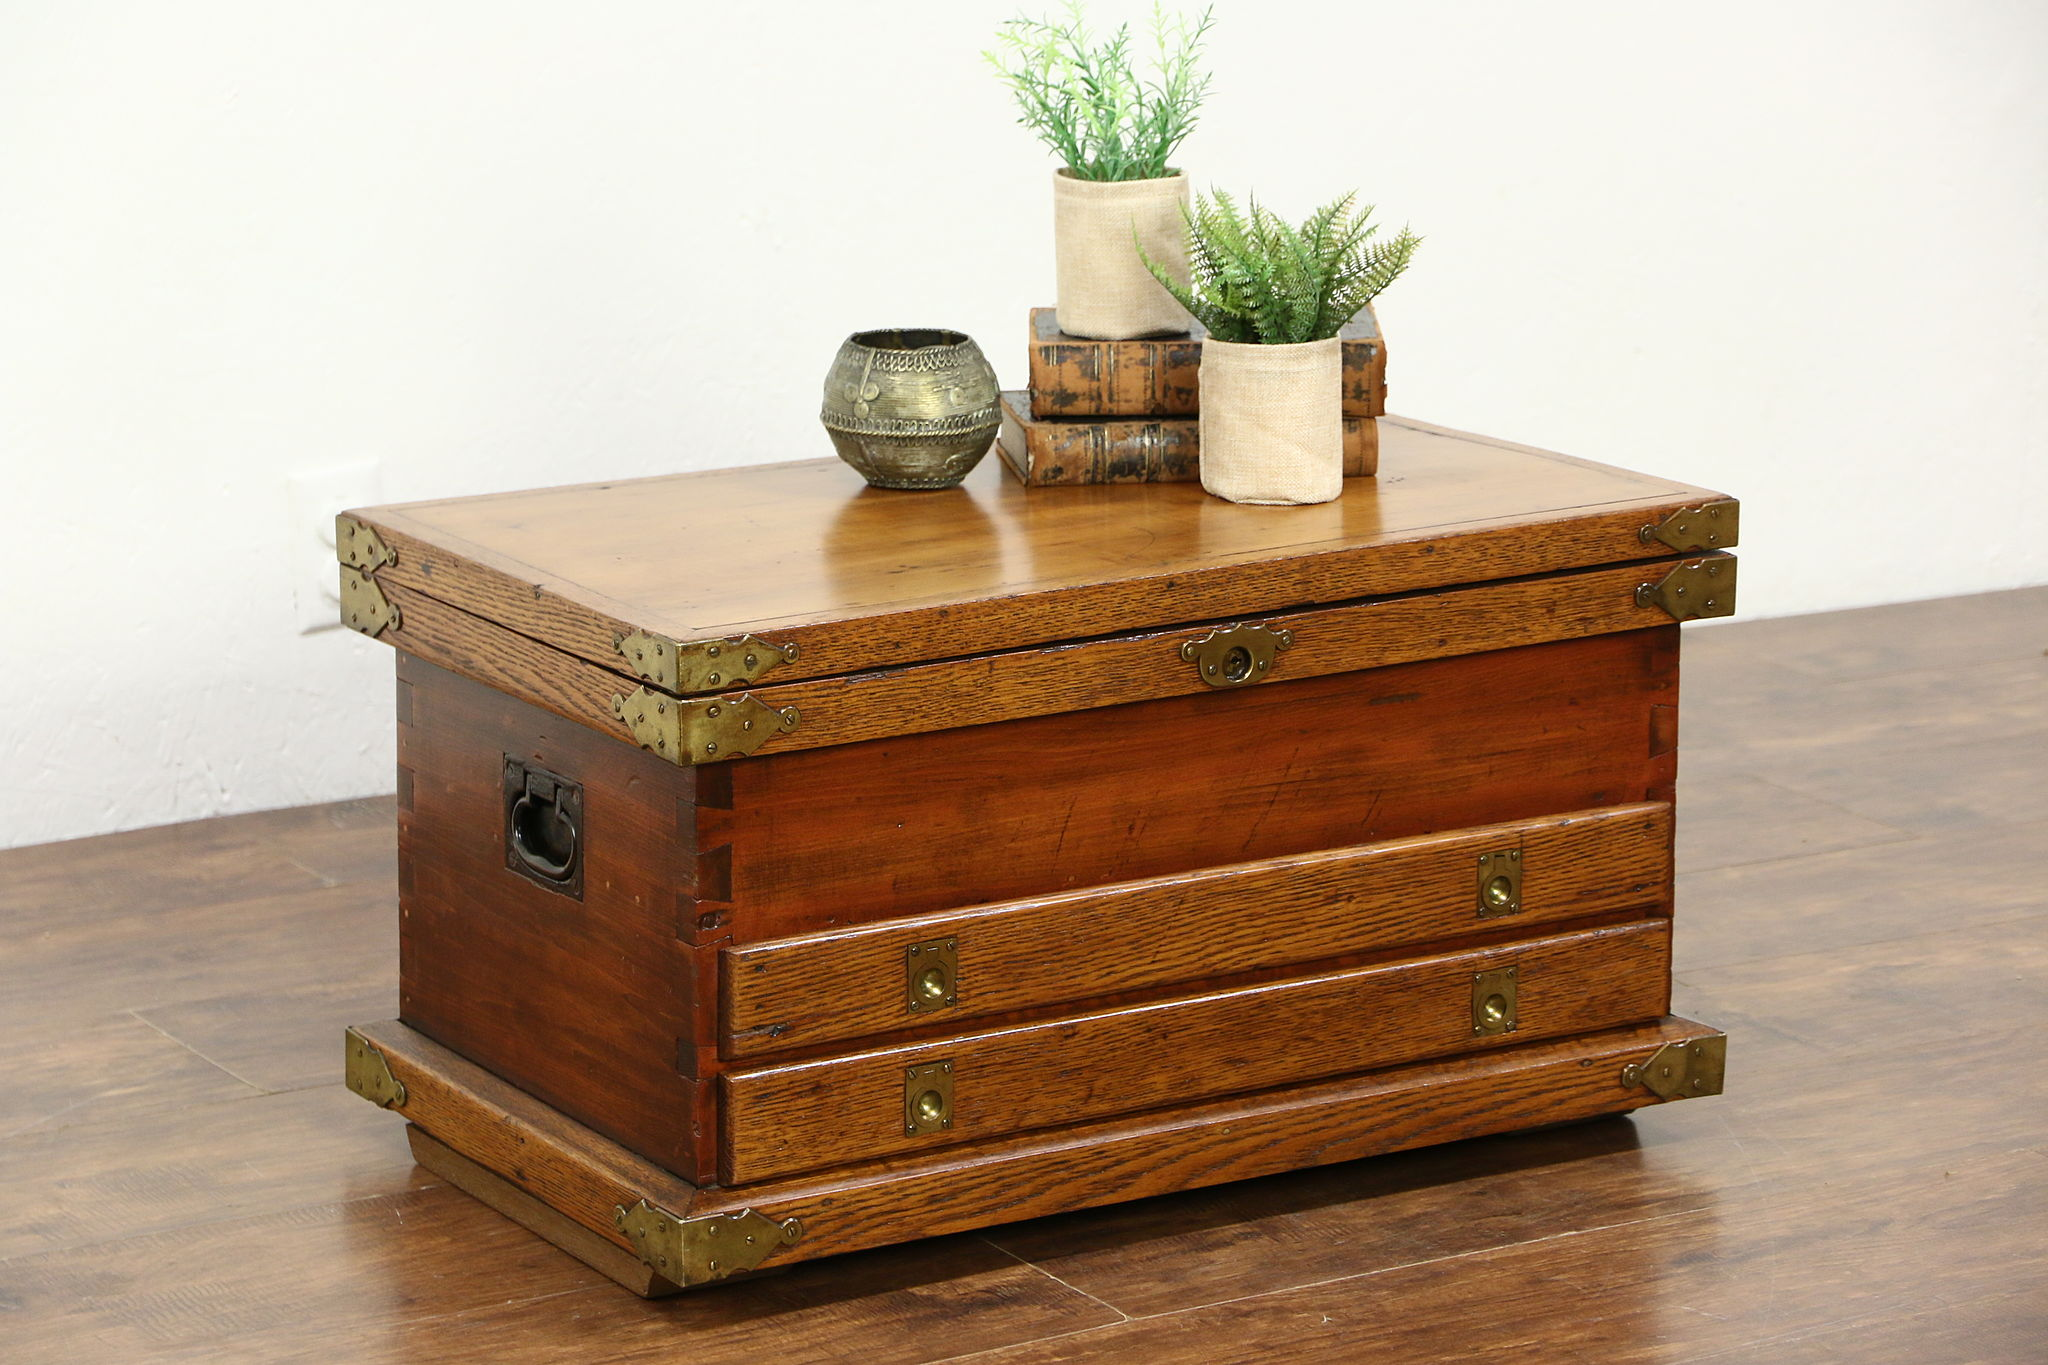 SOLD Oak & Pine 1890 s Antique Handcrafted Tool Chest or Rustic